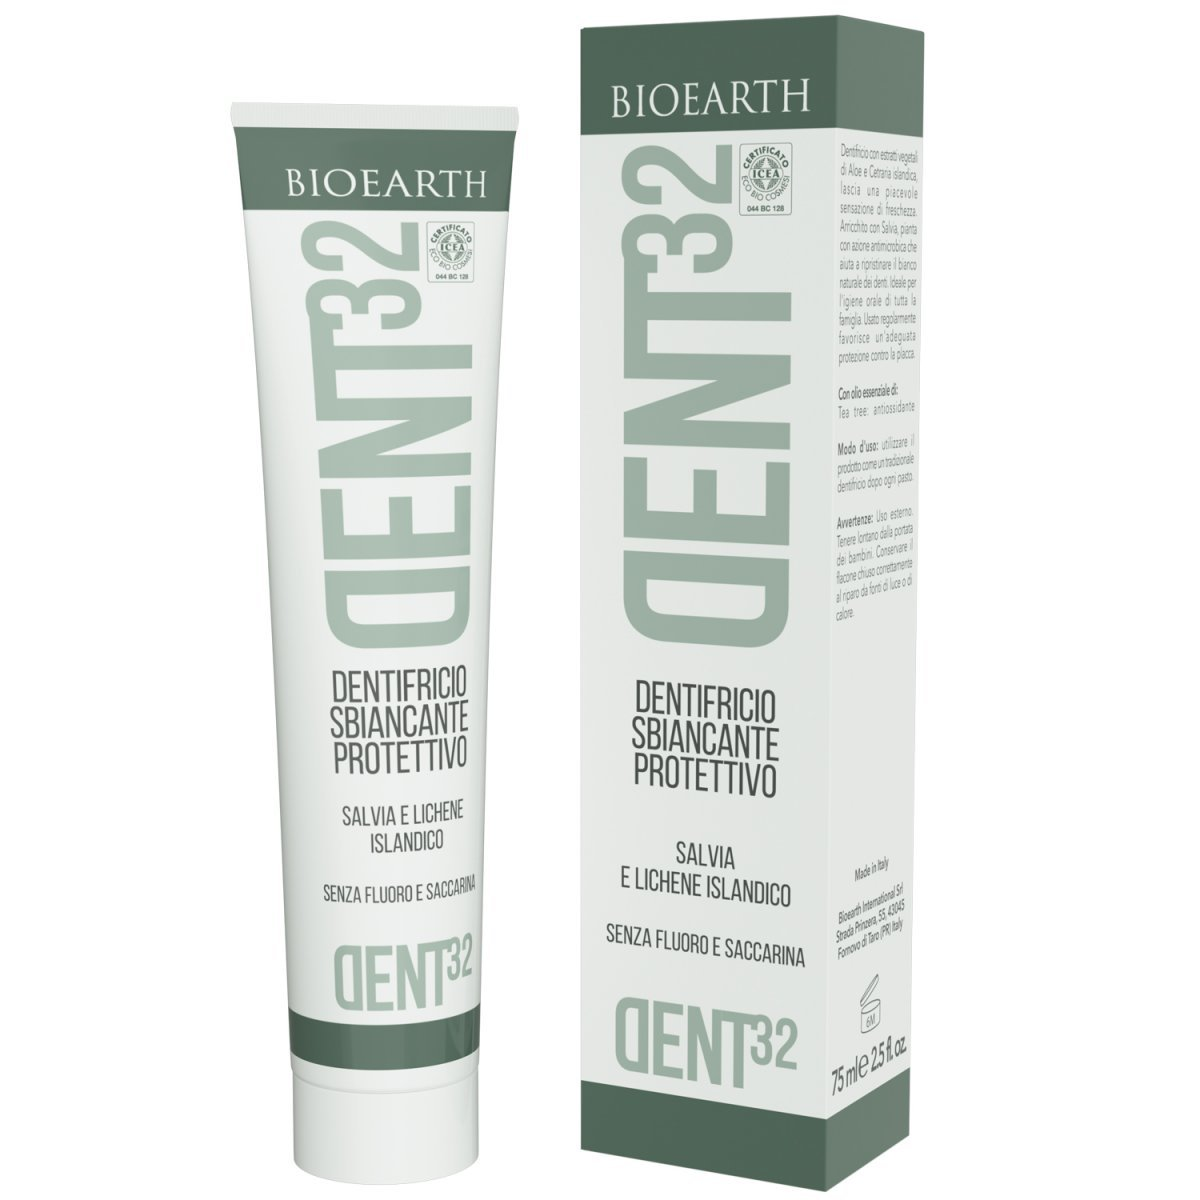 Bioearth Toothpaste whitening and protective